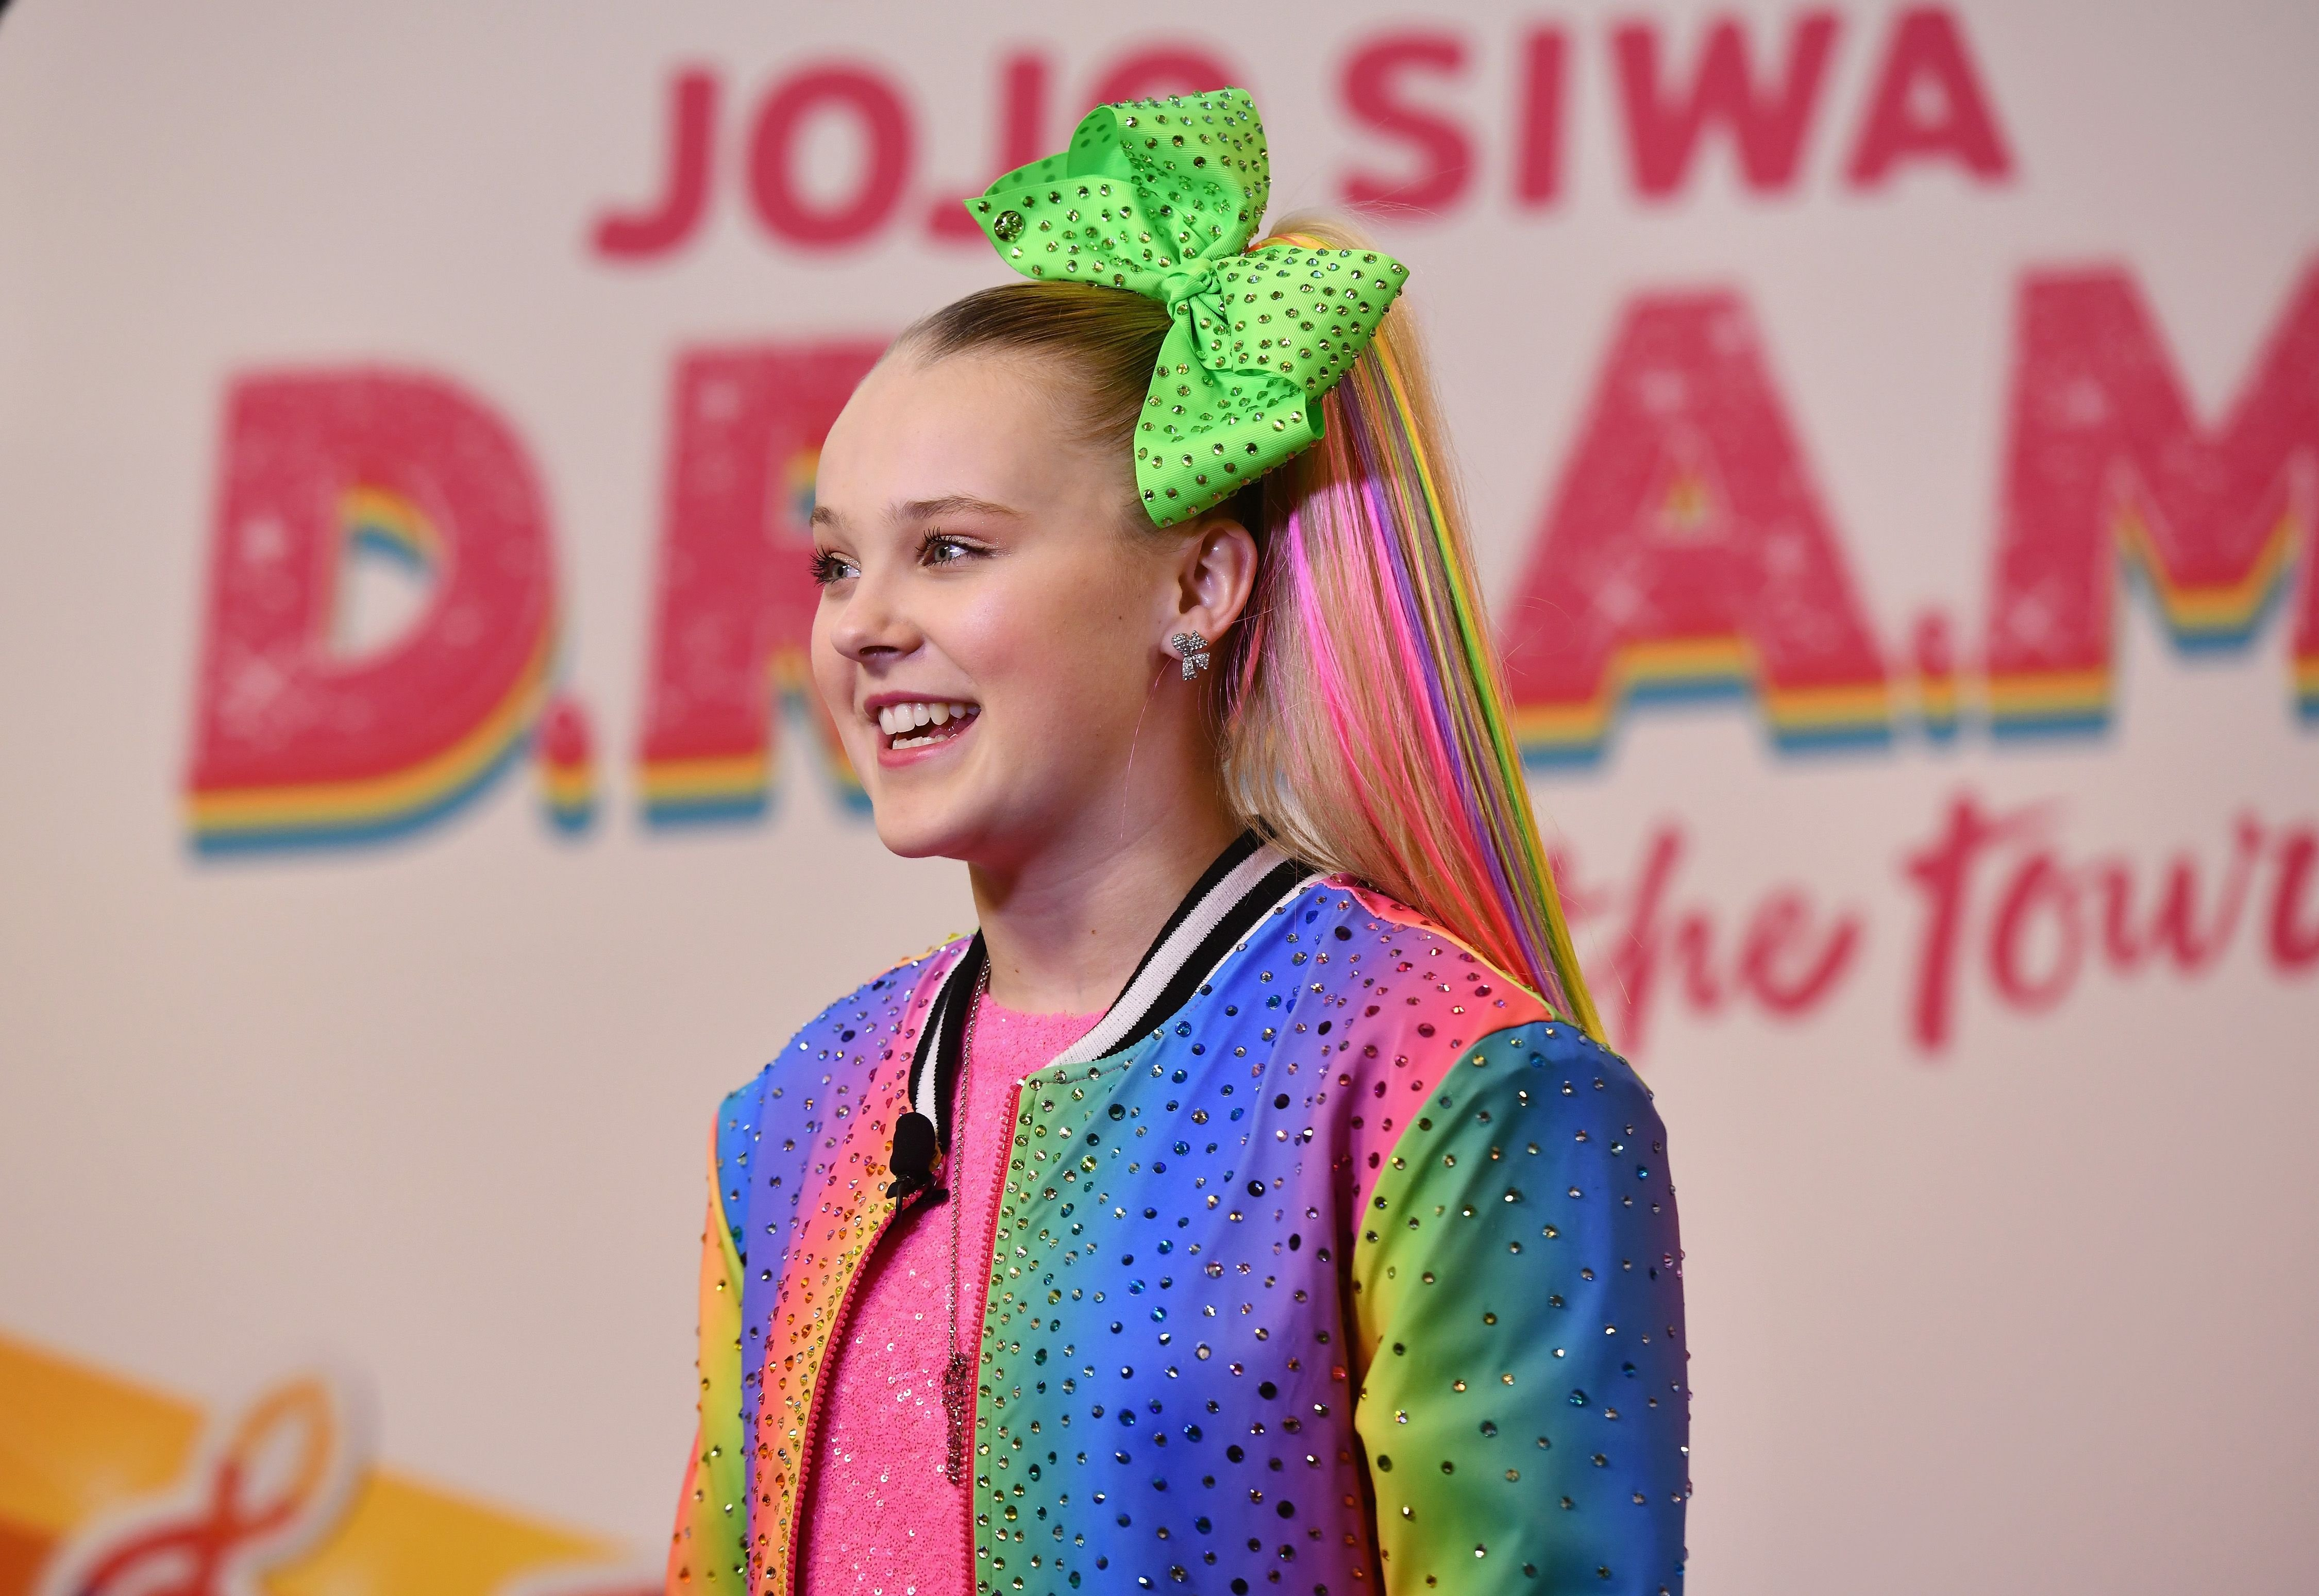 JoJo Siwa announces her upcoming EP and D.R.E.A.M. Tour at Sugar Factory on November 7, 2018, in New York | Photo:Noam Galai/Getty Images